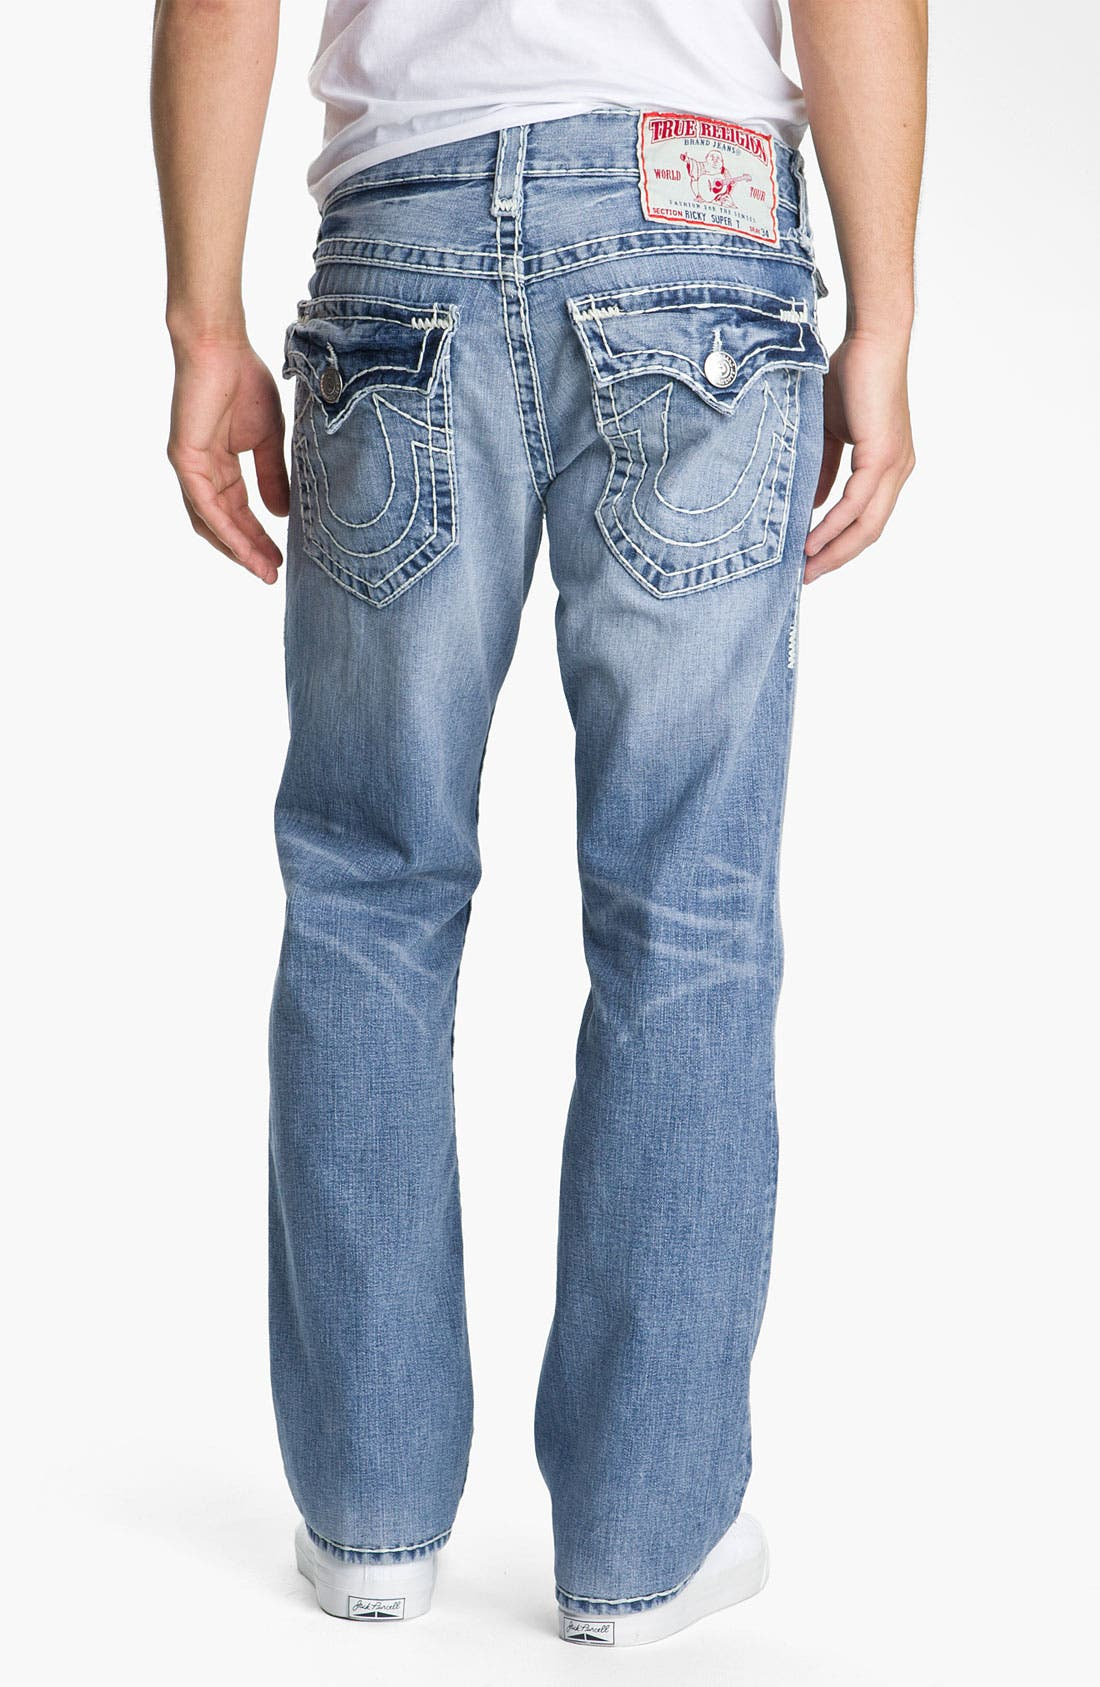 Alternate Image 1 Selected - True Religion Brand Jeans 'Ricky - Natural Super T' Straight Leg Jeans (Medium Drifter)